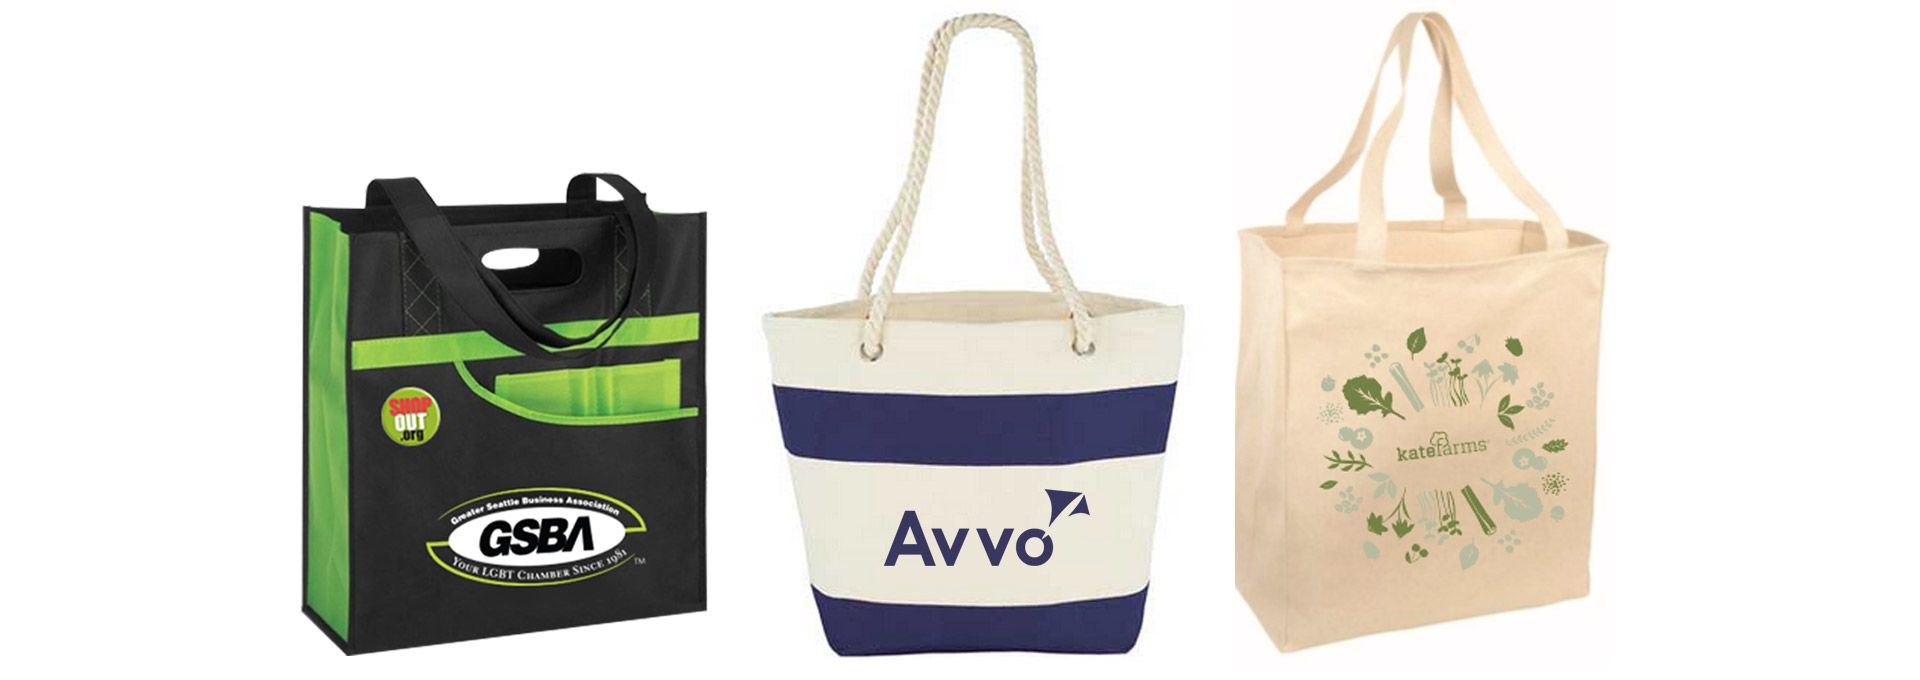 0cf6dd9884ac Custom Printed Branded Promotional Tote Bags Supplier Seattle